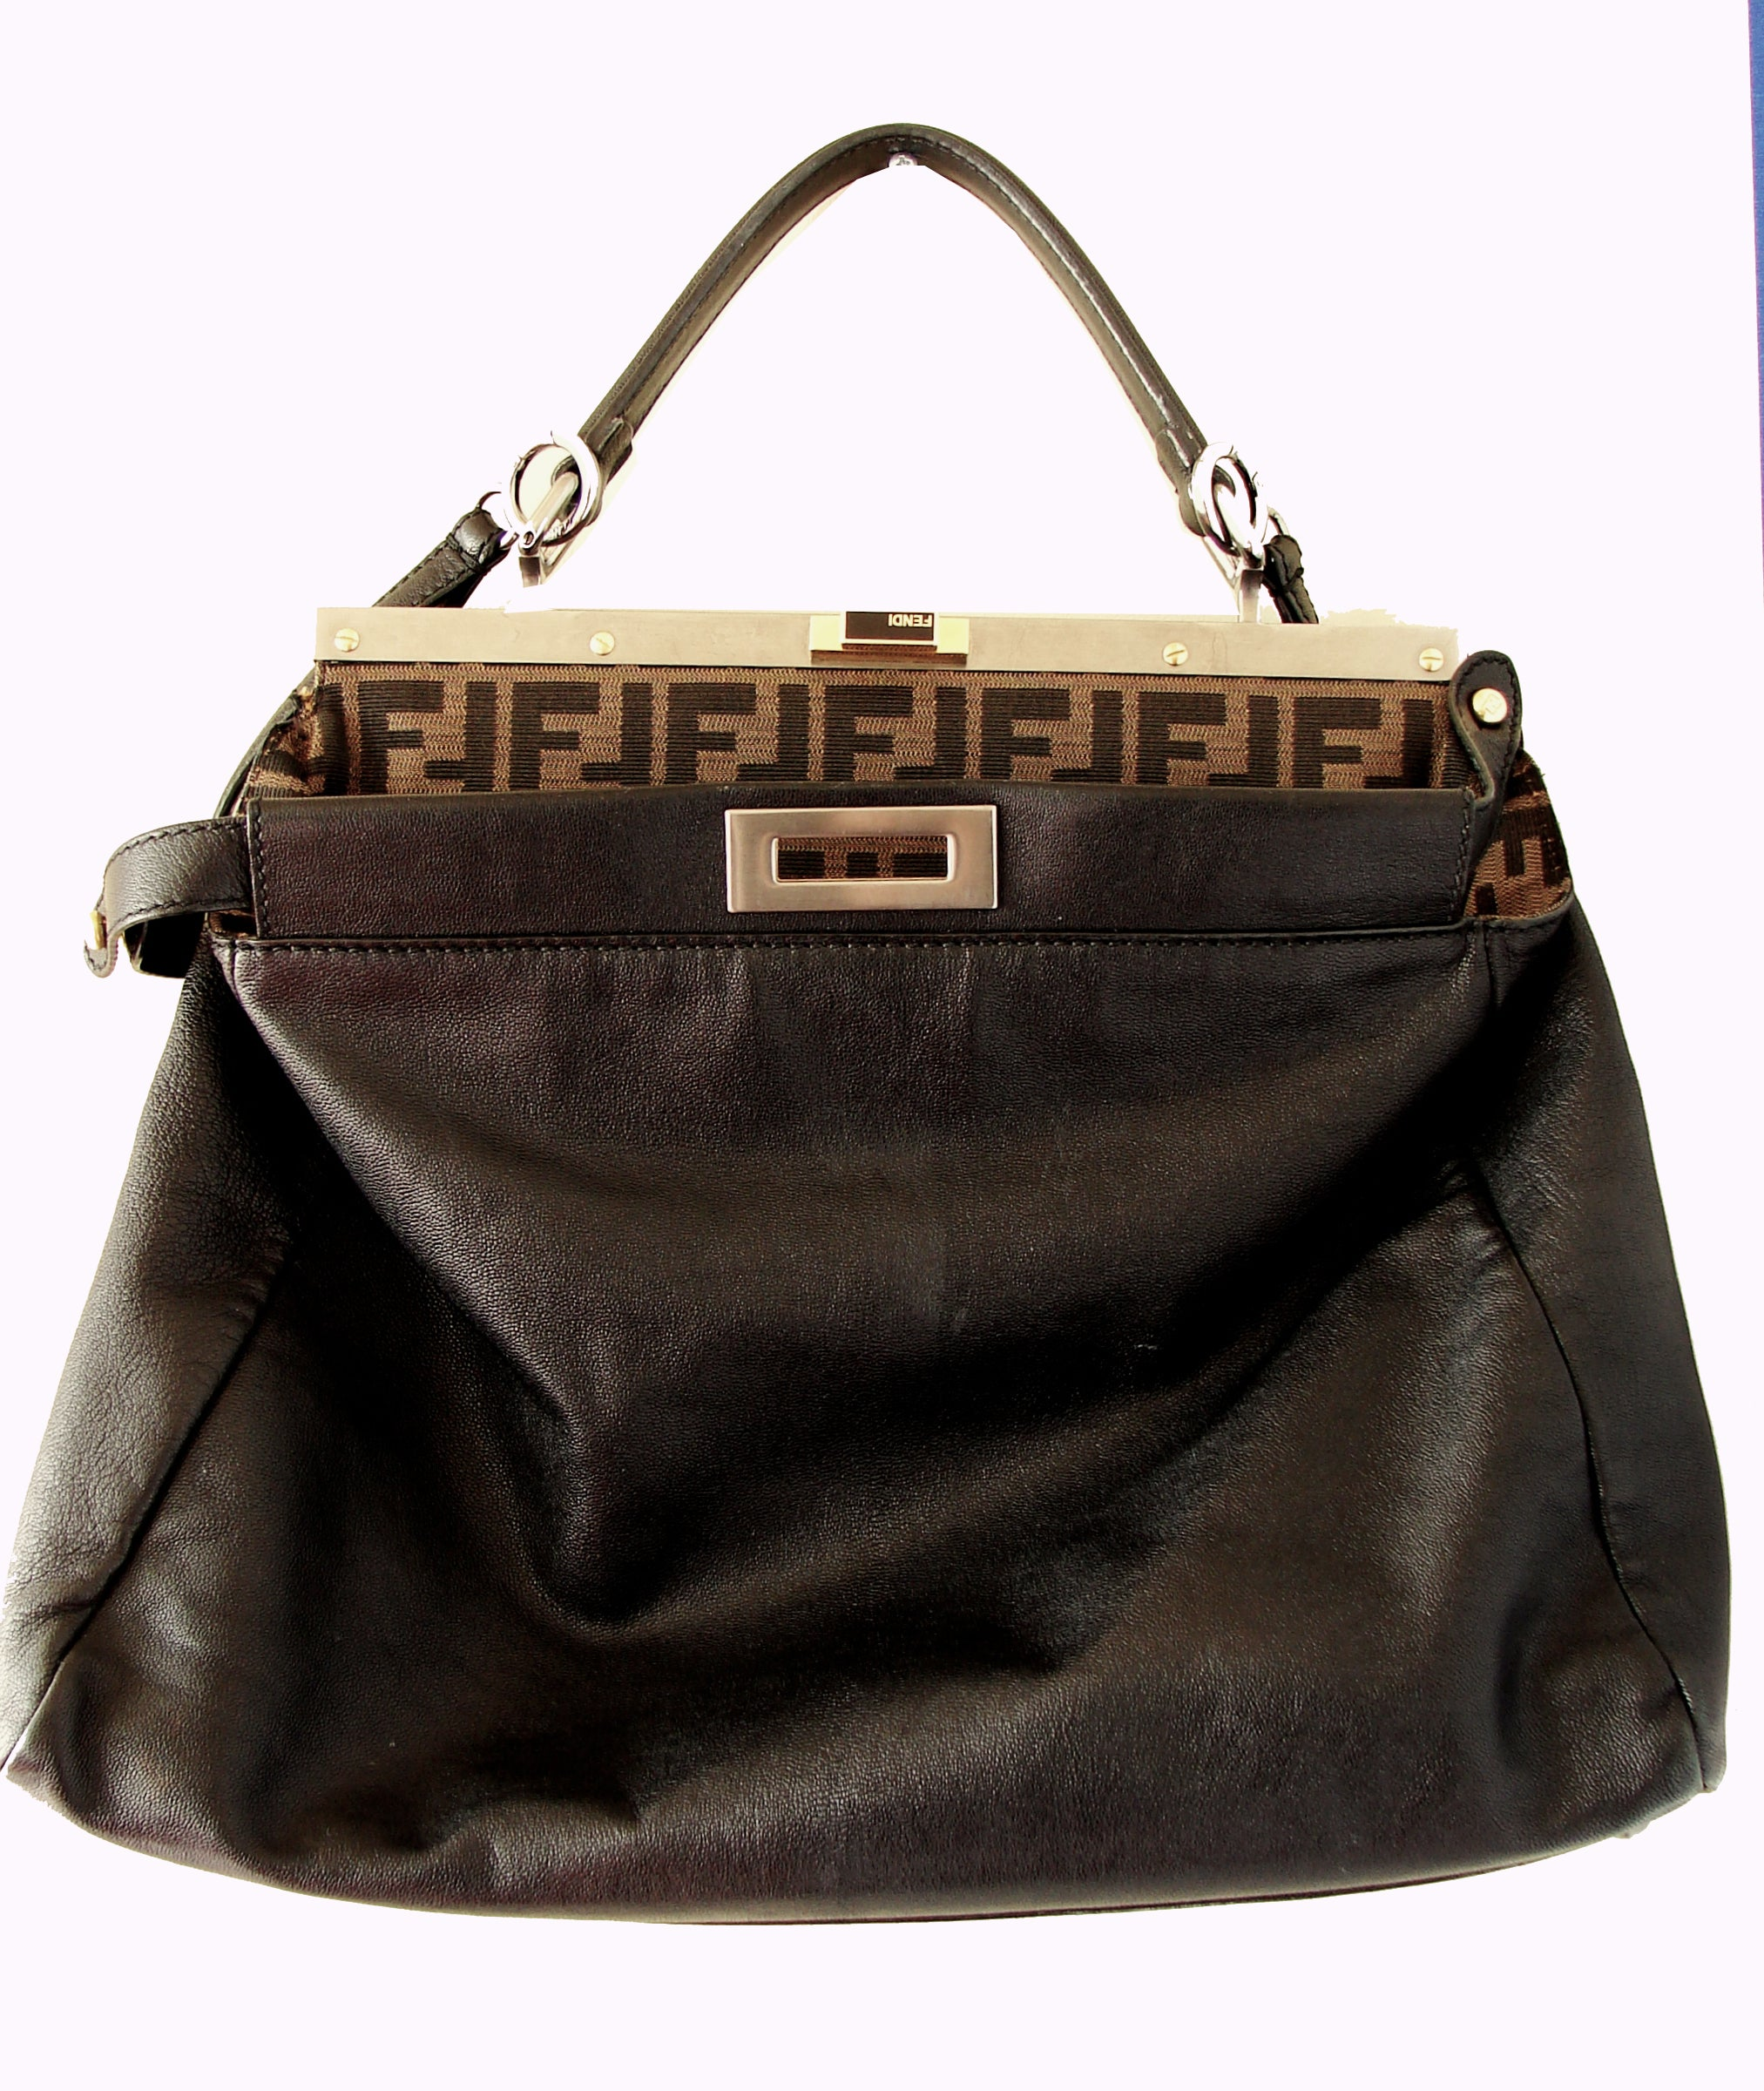 97a1ead286 Iconic Fendi Large Black Leather Peekaboo Bag Tote Satchel with Zucca Lining  at 1stdibs